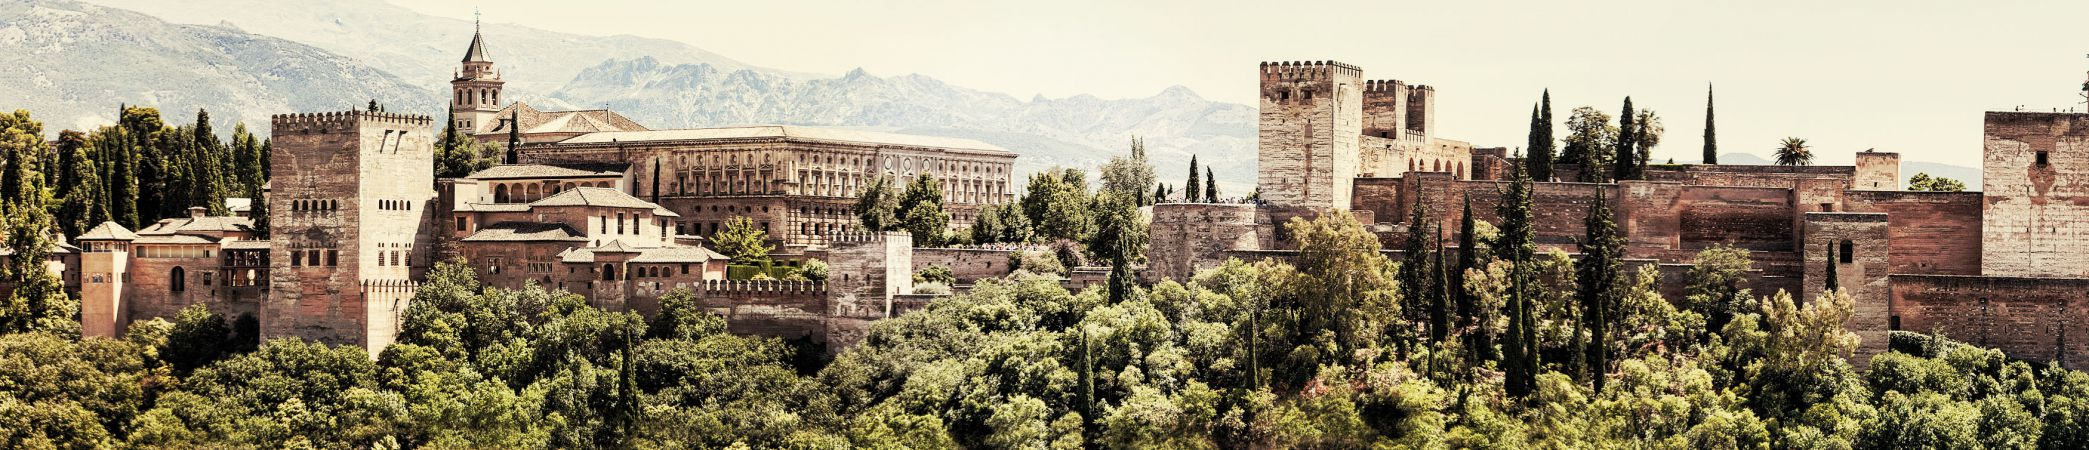 6 Reasons to visit the Alhambra